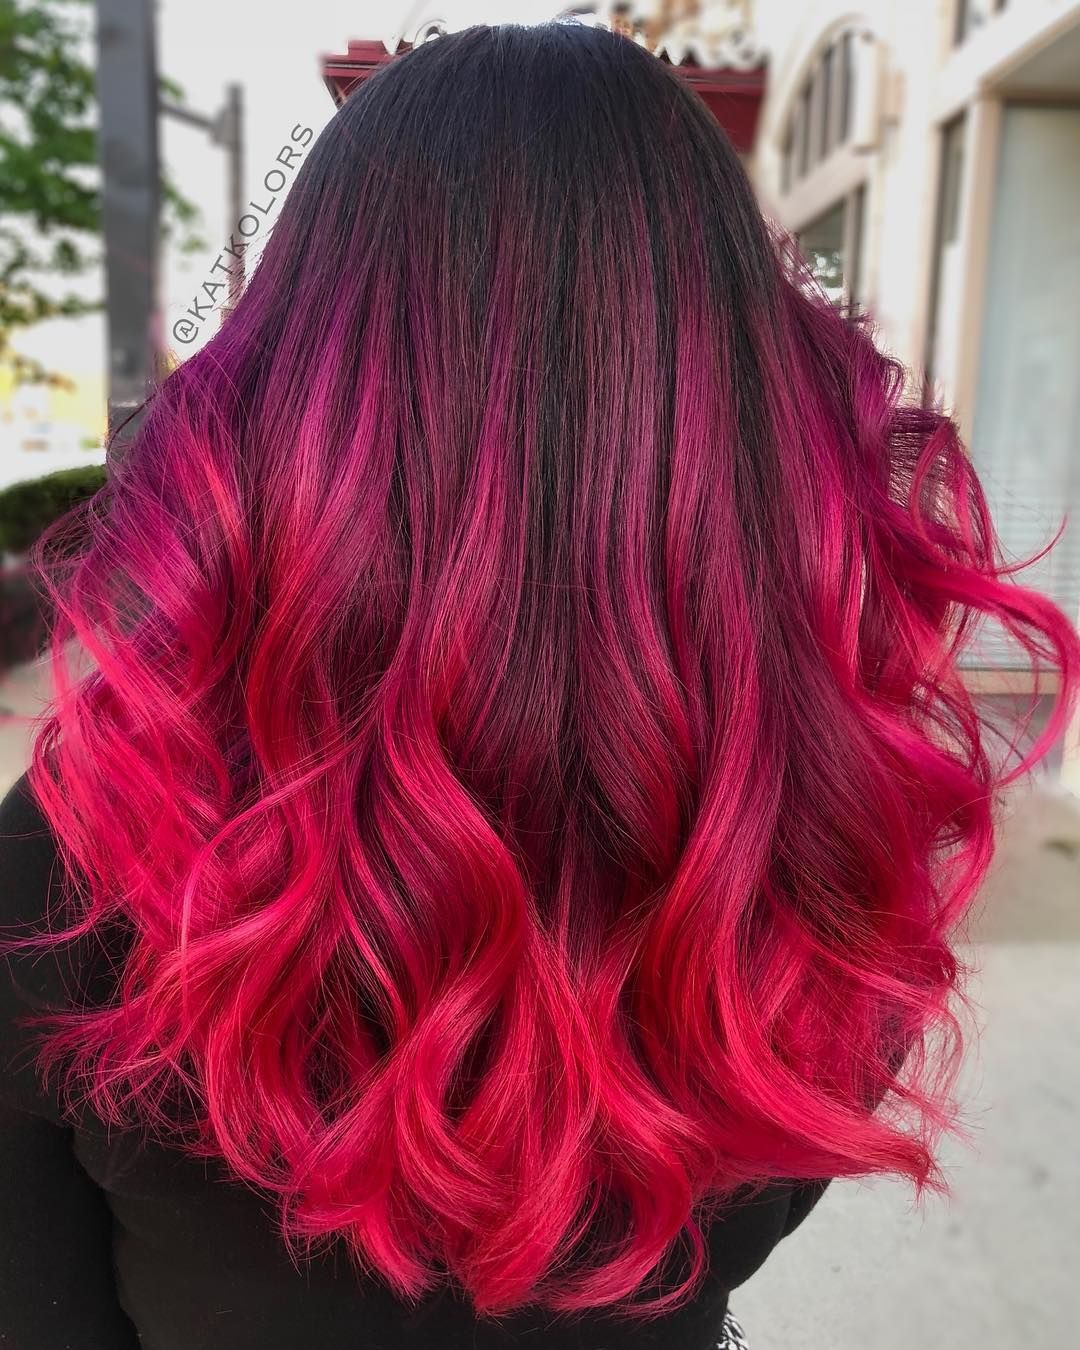 1 761 Likes 28 Comments Hair Makeup Kansas City Katkolors On Instagram Ravishing Seems Like A Fitting Word Pink Ombre Hair Hair Styles Ombre Hair